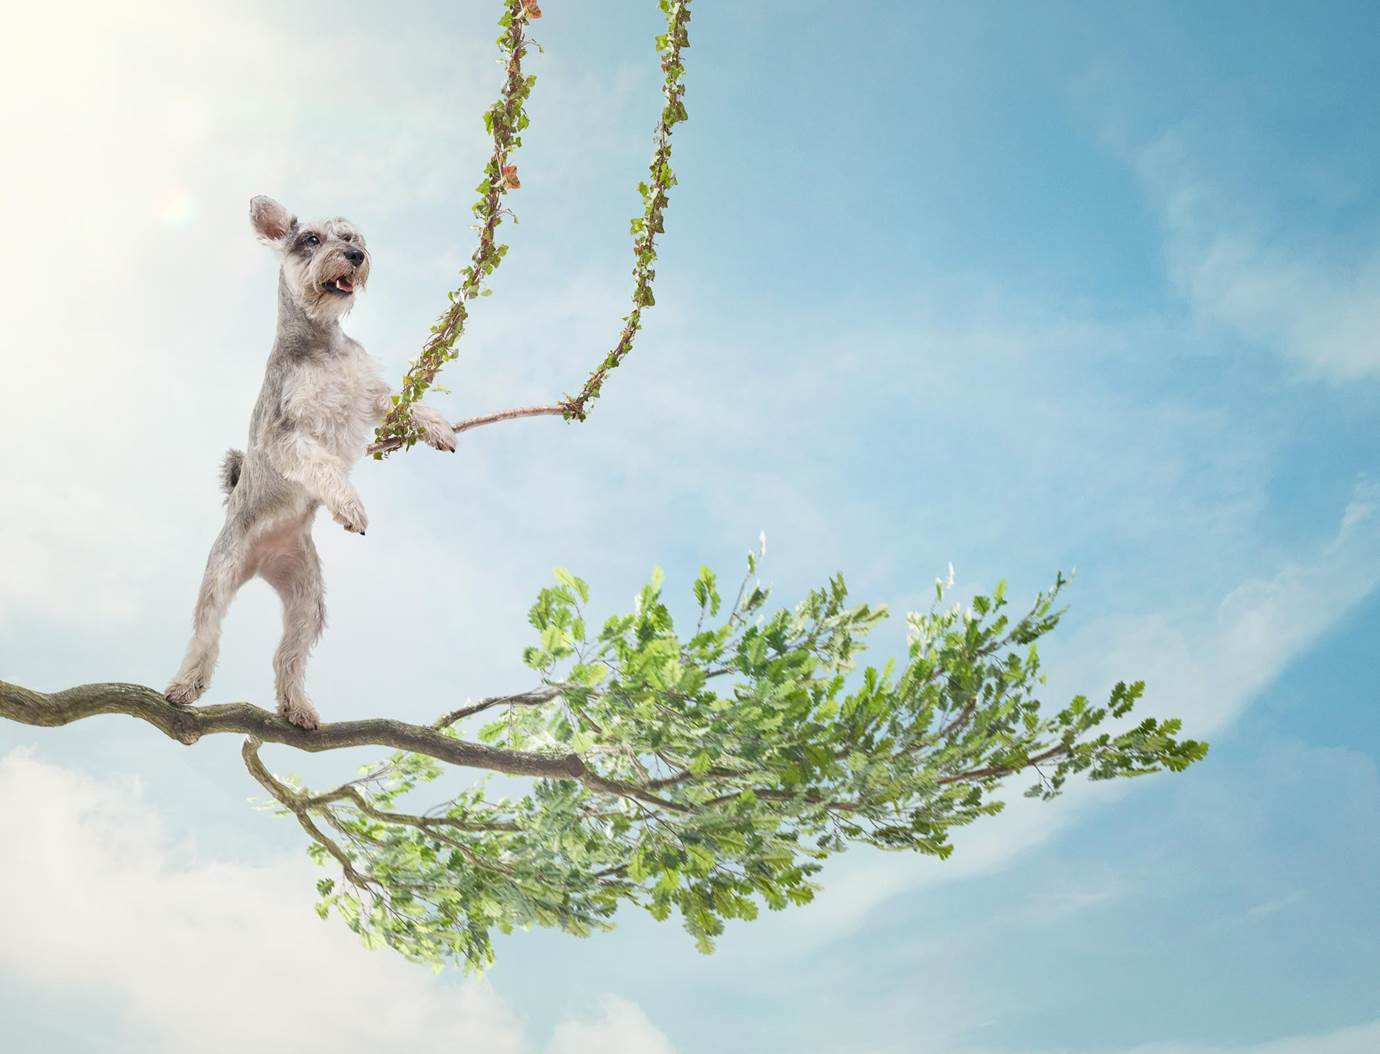 Alex Howe animals dog in tree using swing with paws and smiling retouch